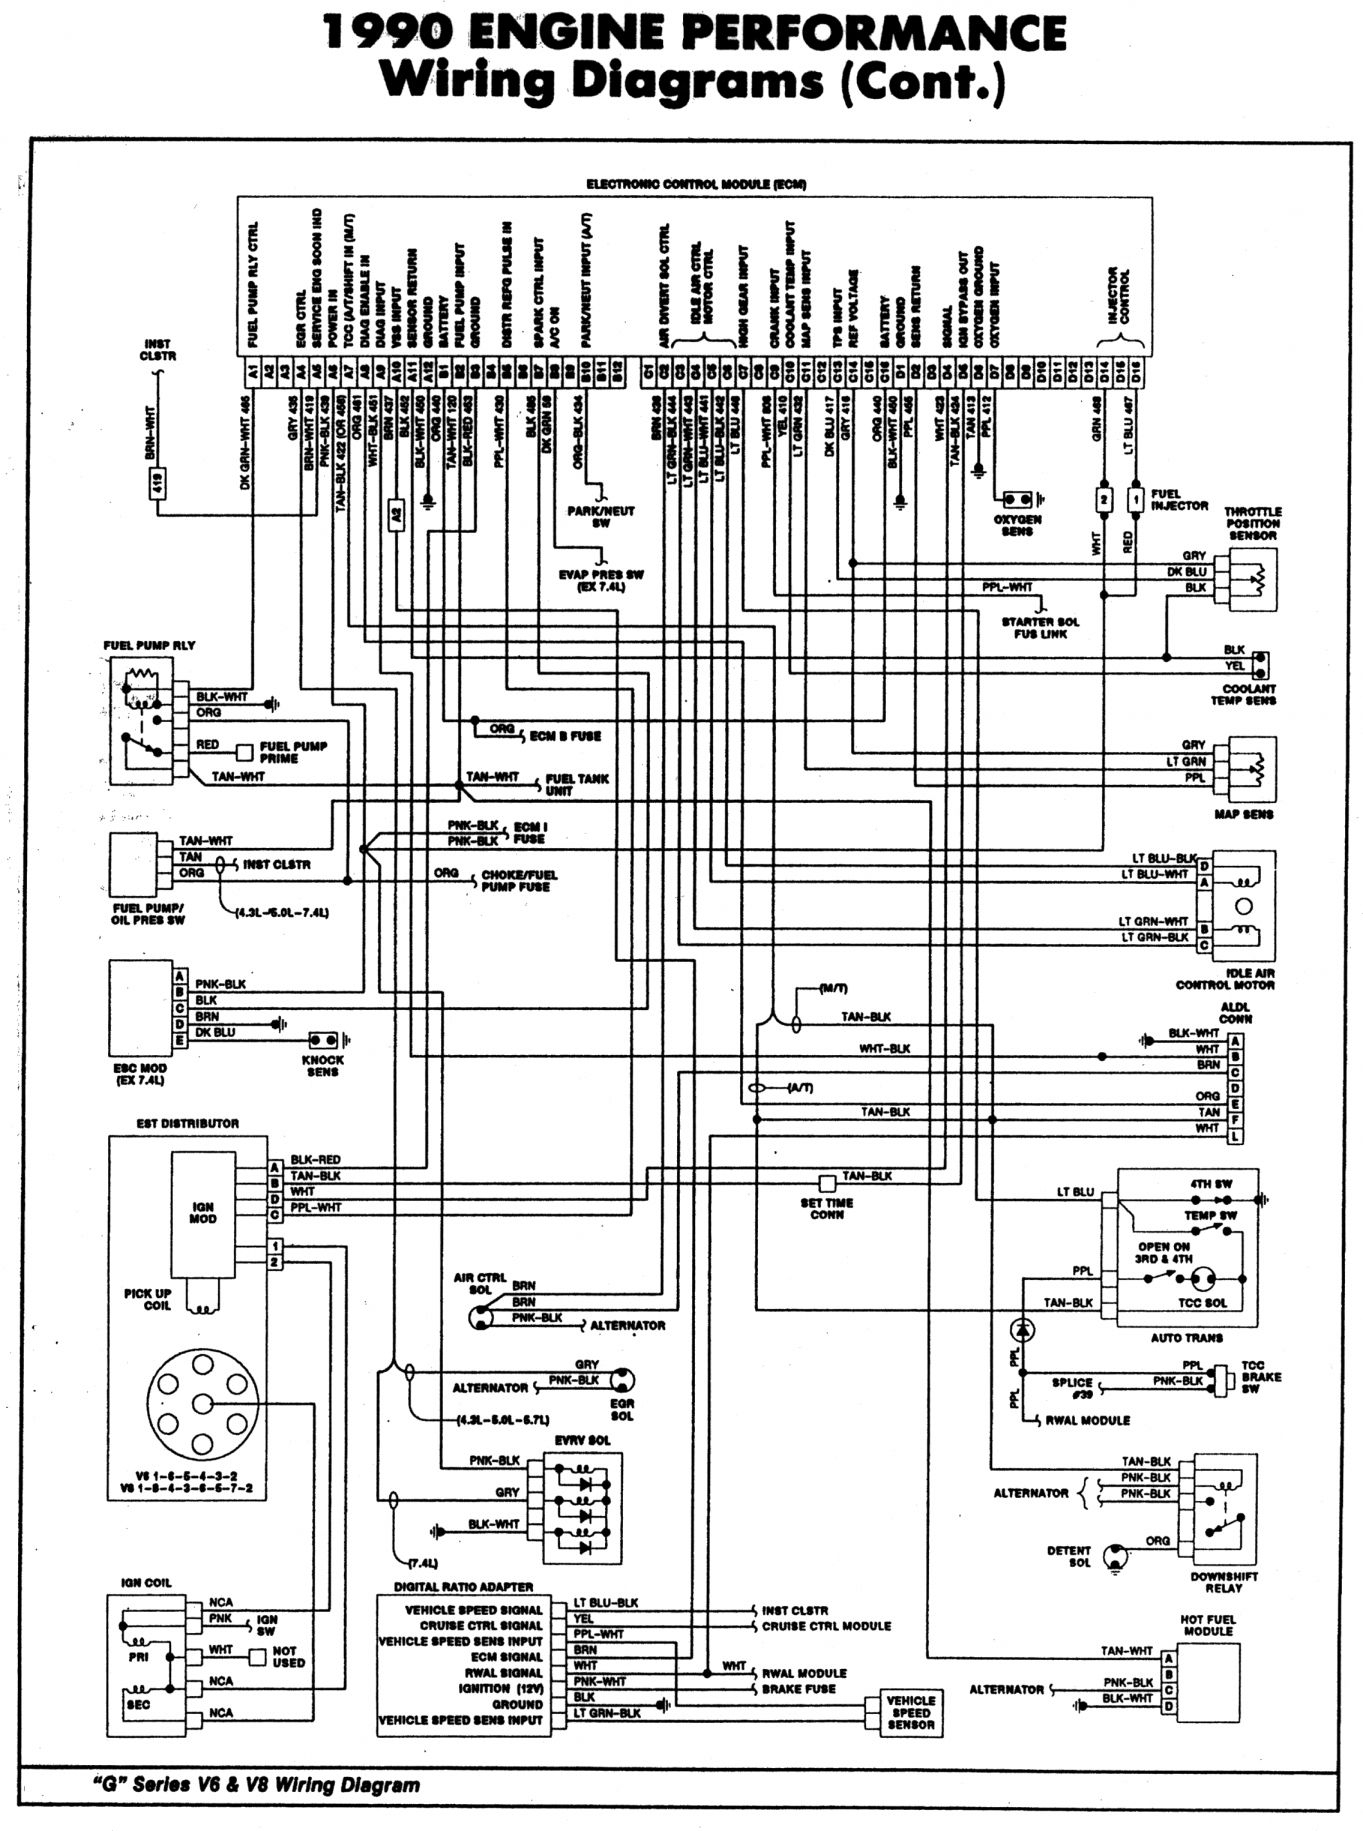 1992 3500chevy Truck Wiring Diagram And Wiring Diagram For Chevy Truck W Cableado Electrico Diagrama De Circuito Electrico Diagrama De Instalacion Electrica